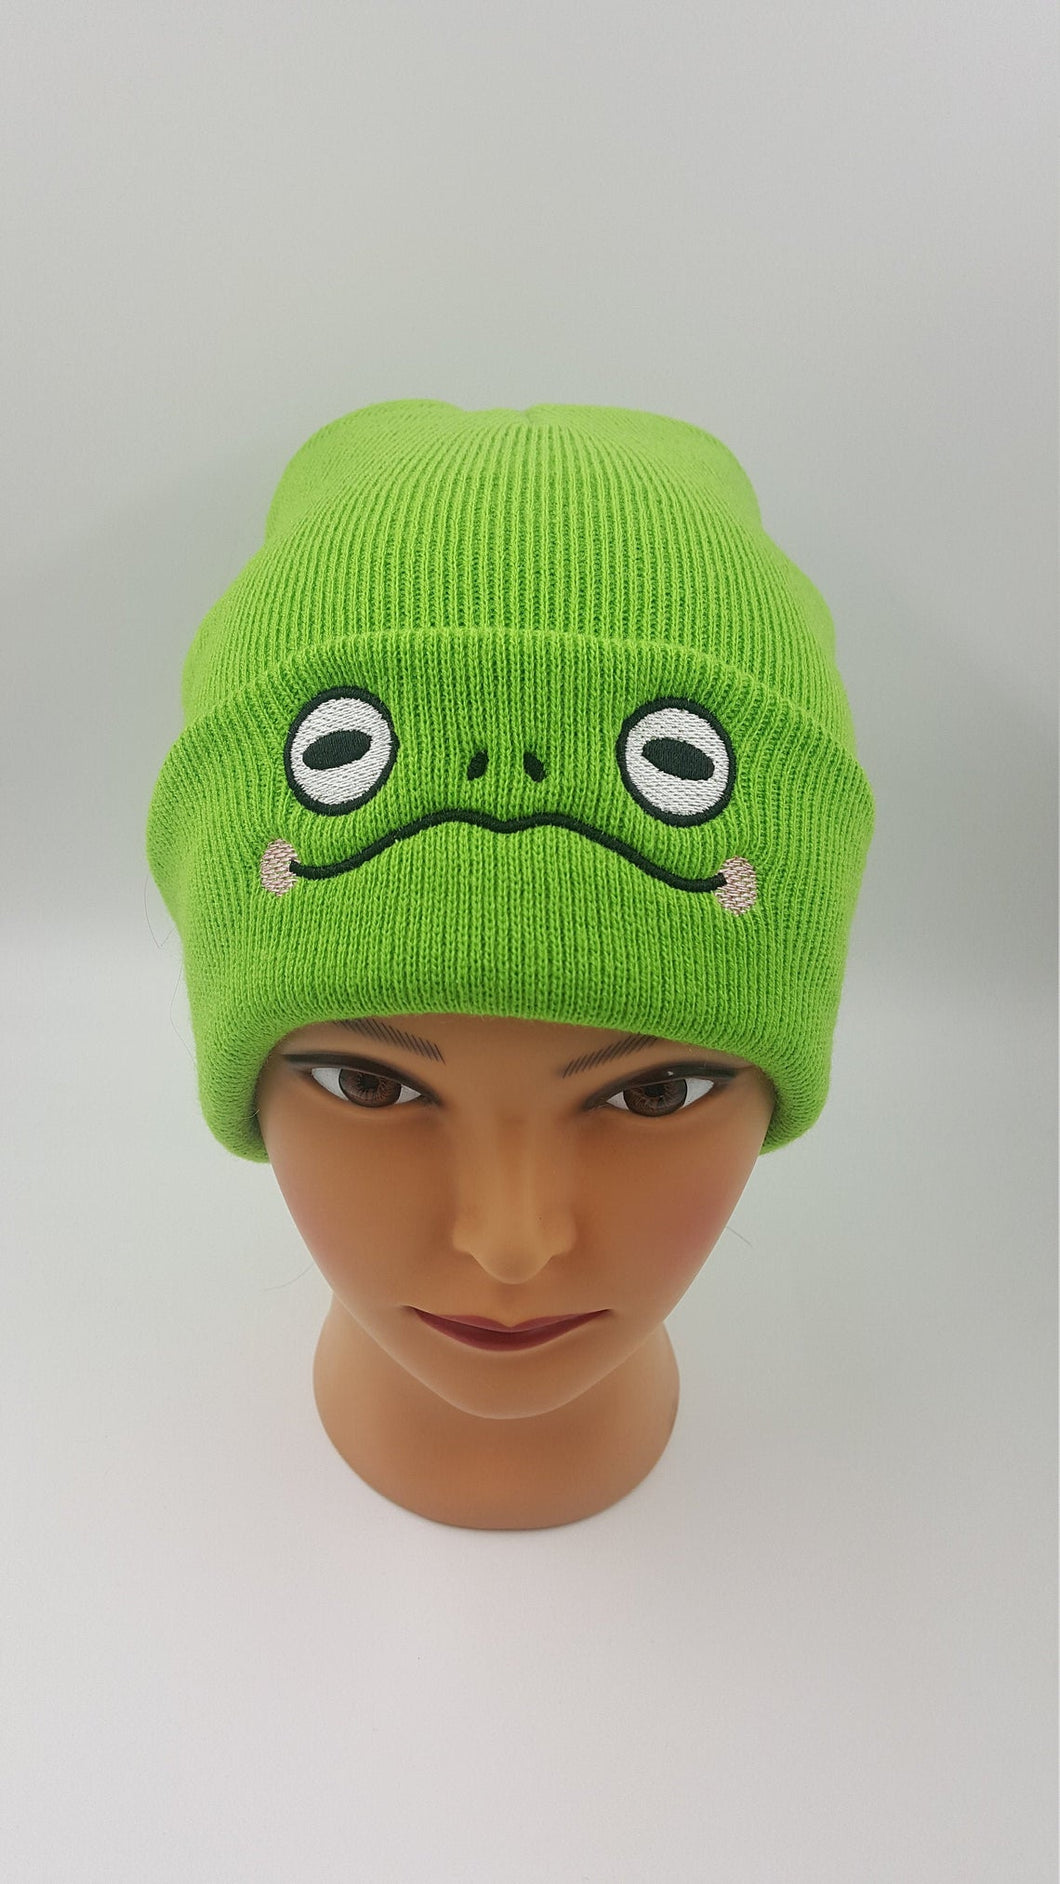 Green Frog Beanie, Kawaii Fashion, Swamp Cute Hat, Cottage Core Knitted Cap Warm and Comfortable Wizard Skull Cap Perfect Gift for Bog Witch